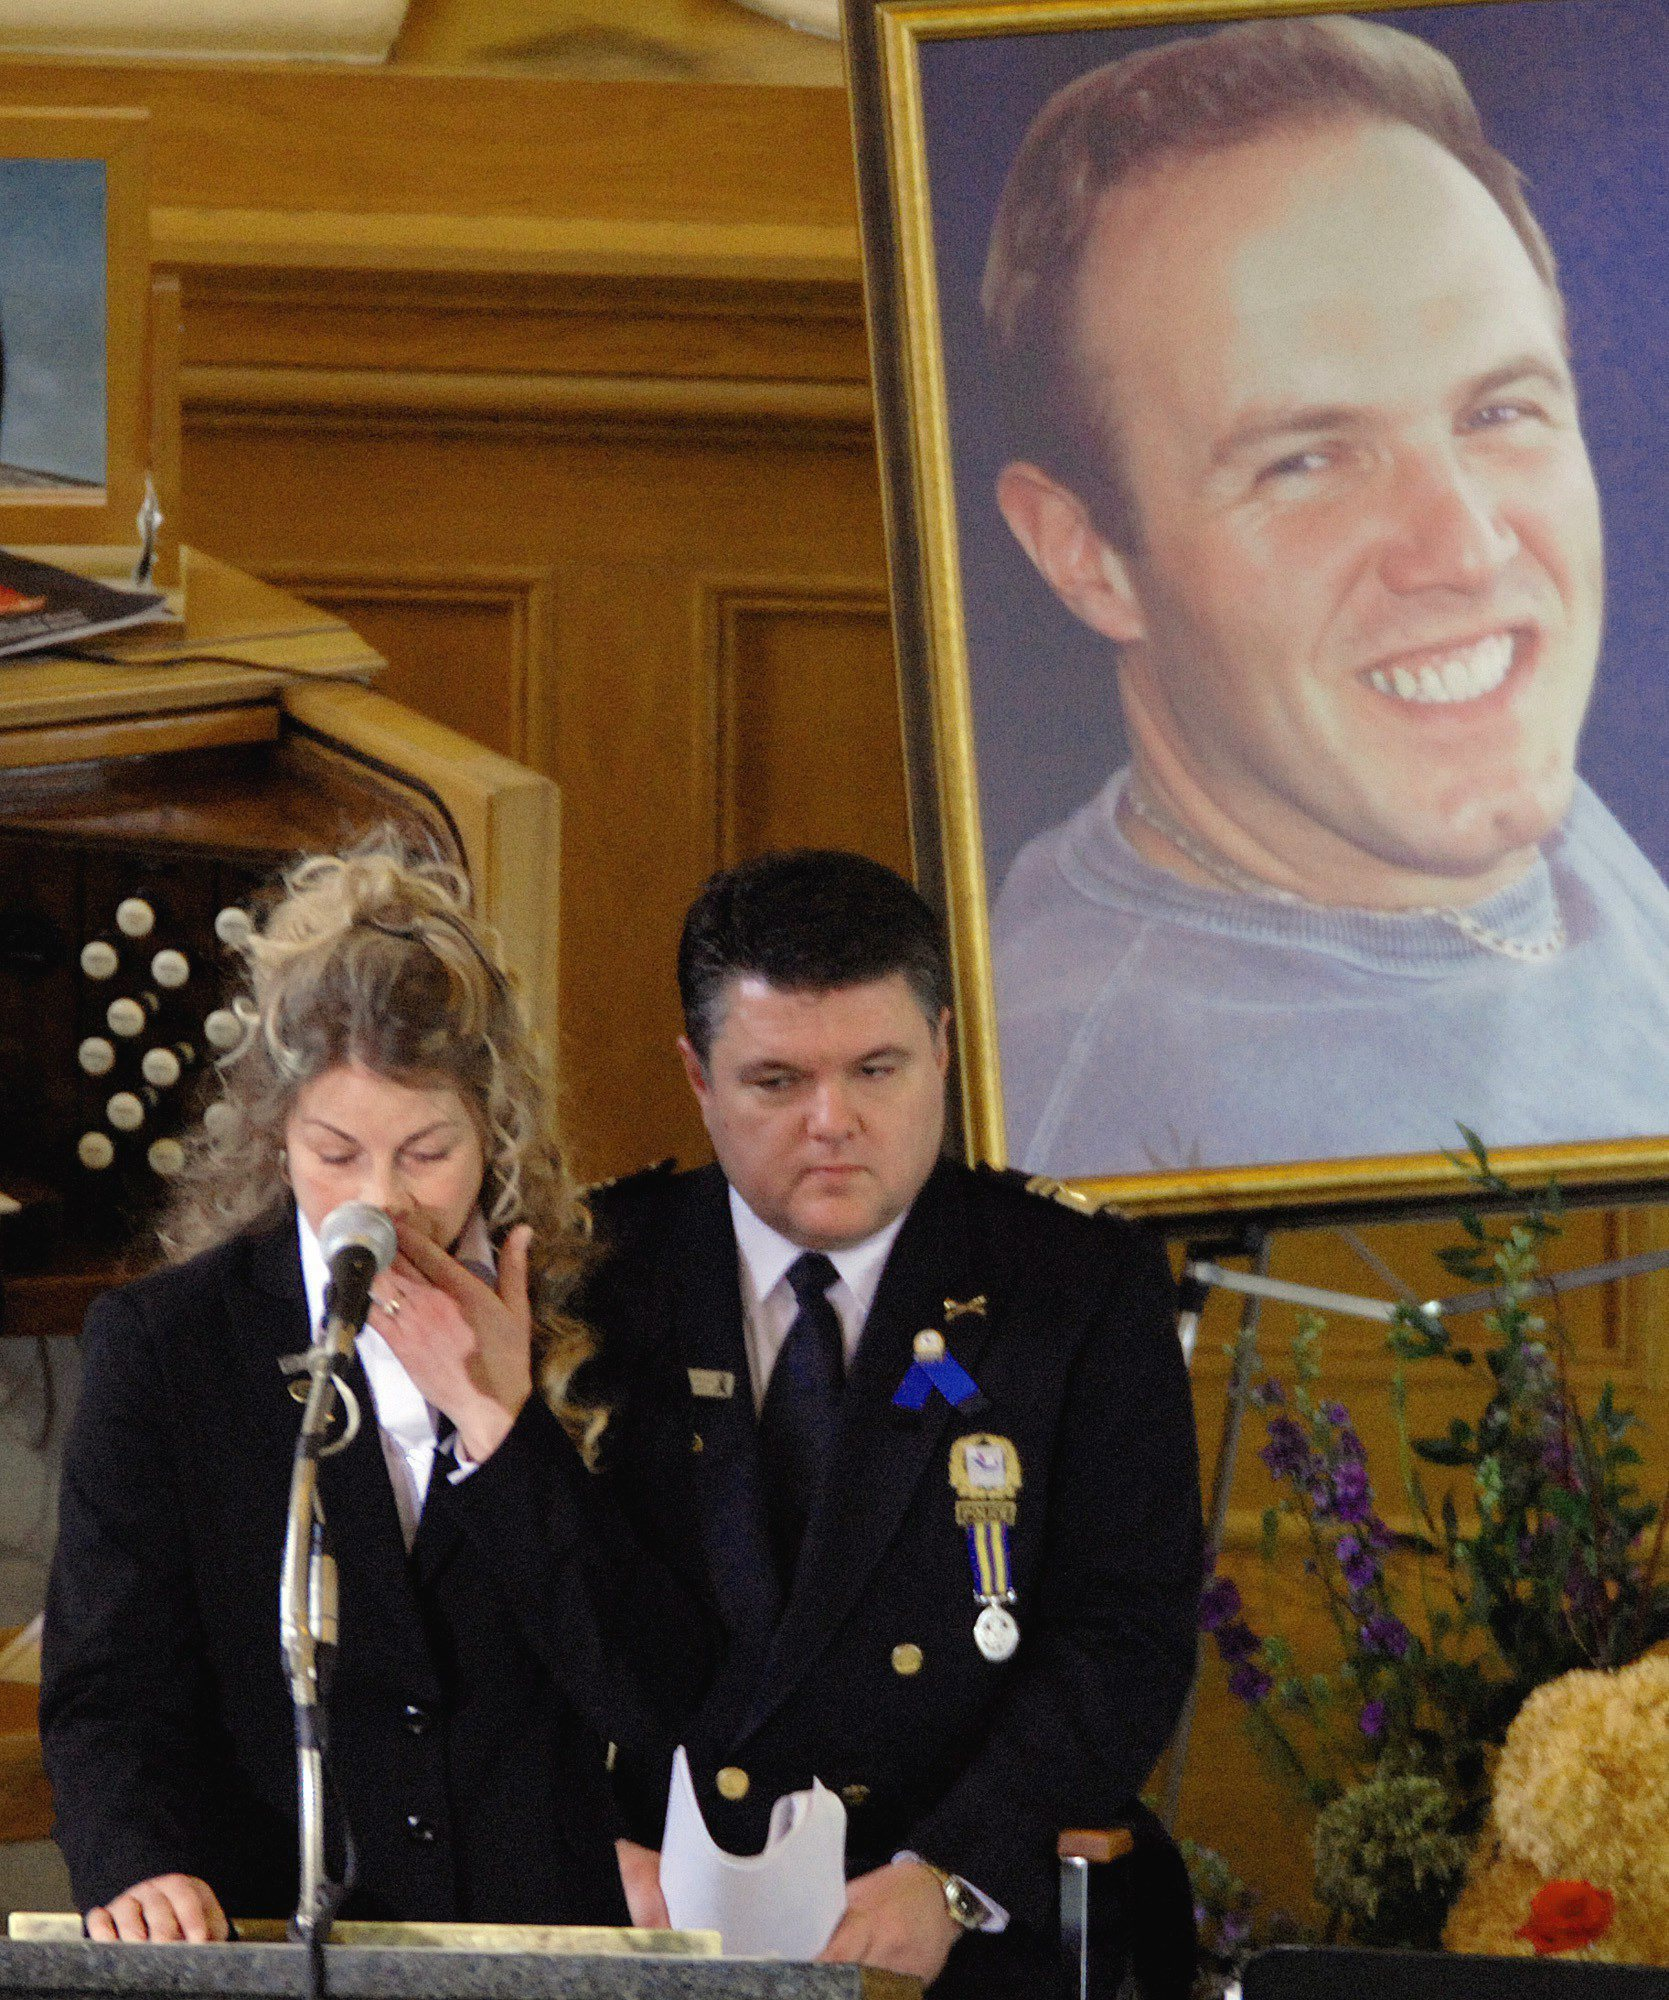 Dominique Lapointe, the widow of Laval police Sgt. Daniel Tessier, fights back tears at his funeral in March 2007. Tessier was shot dead during an early morning drug raid on a home in the Montreal suburbs. (The Canadian Press)